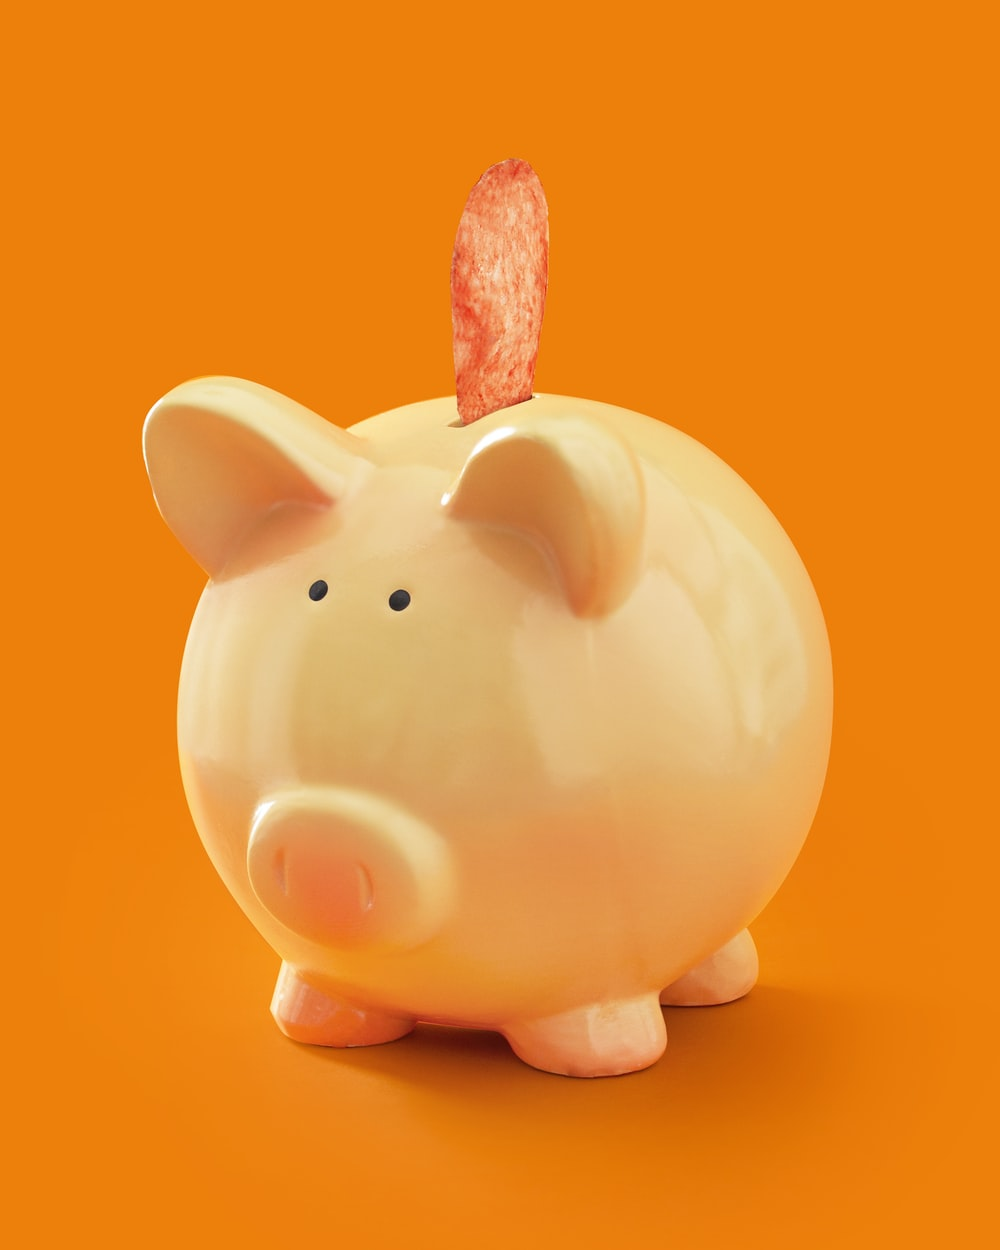 white ceramic piggy bank on orange surface